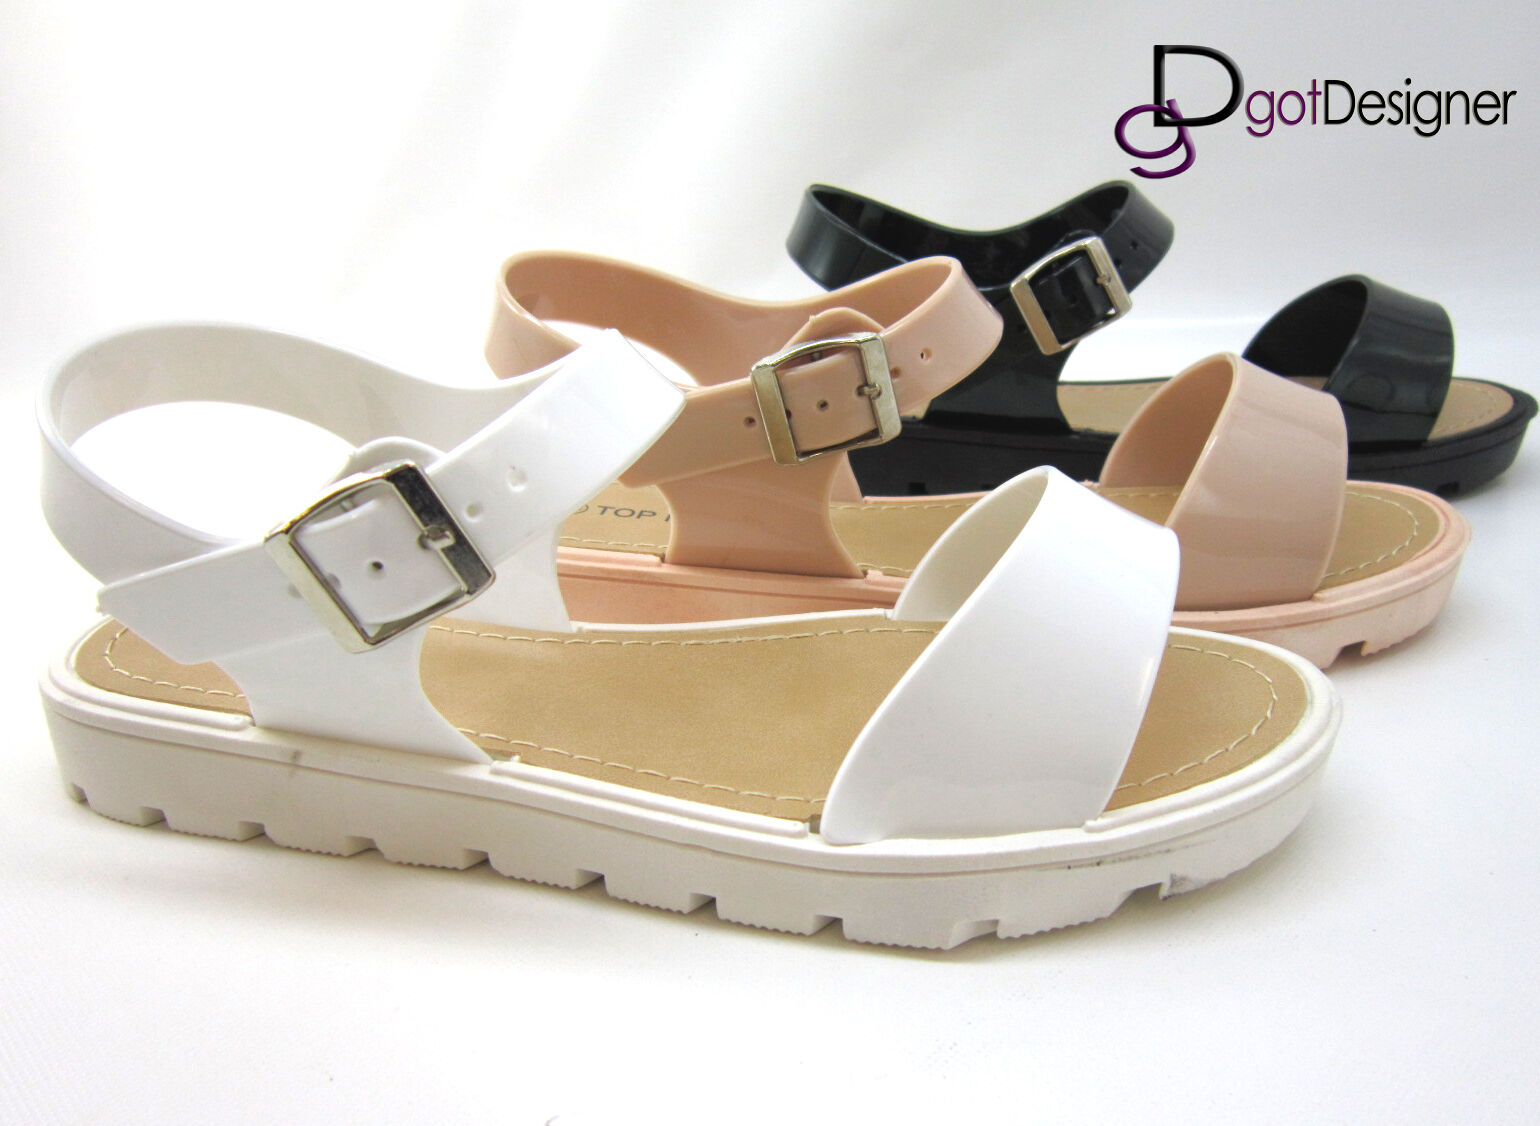 Womens Fashion Sandal Buckle Shoe Concise Flats Flip-flops Buckle Sandal Spring Comfort Summer 58a0e8